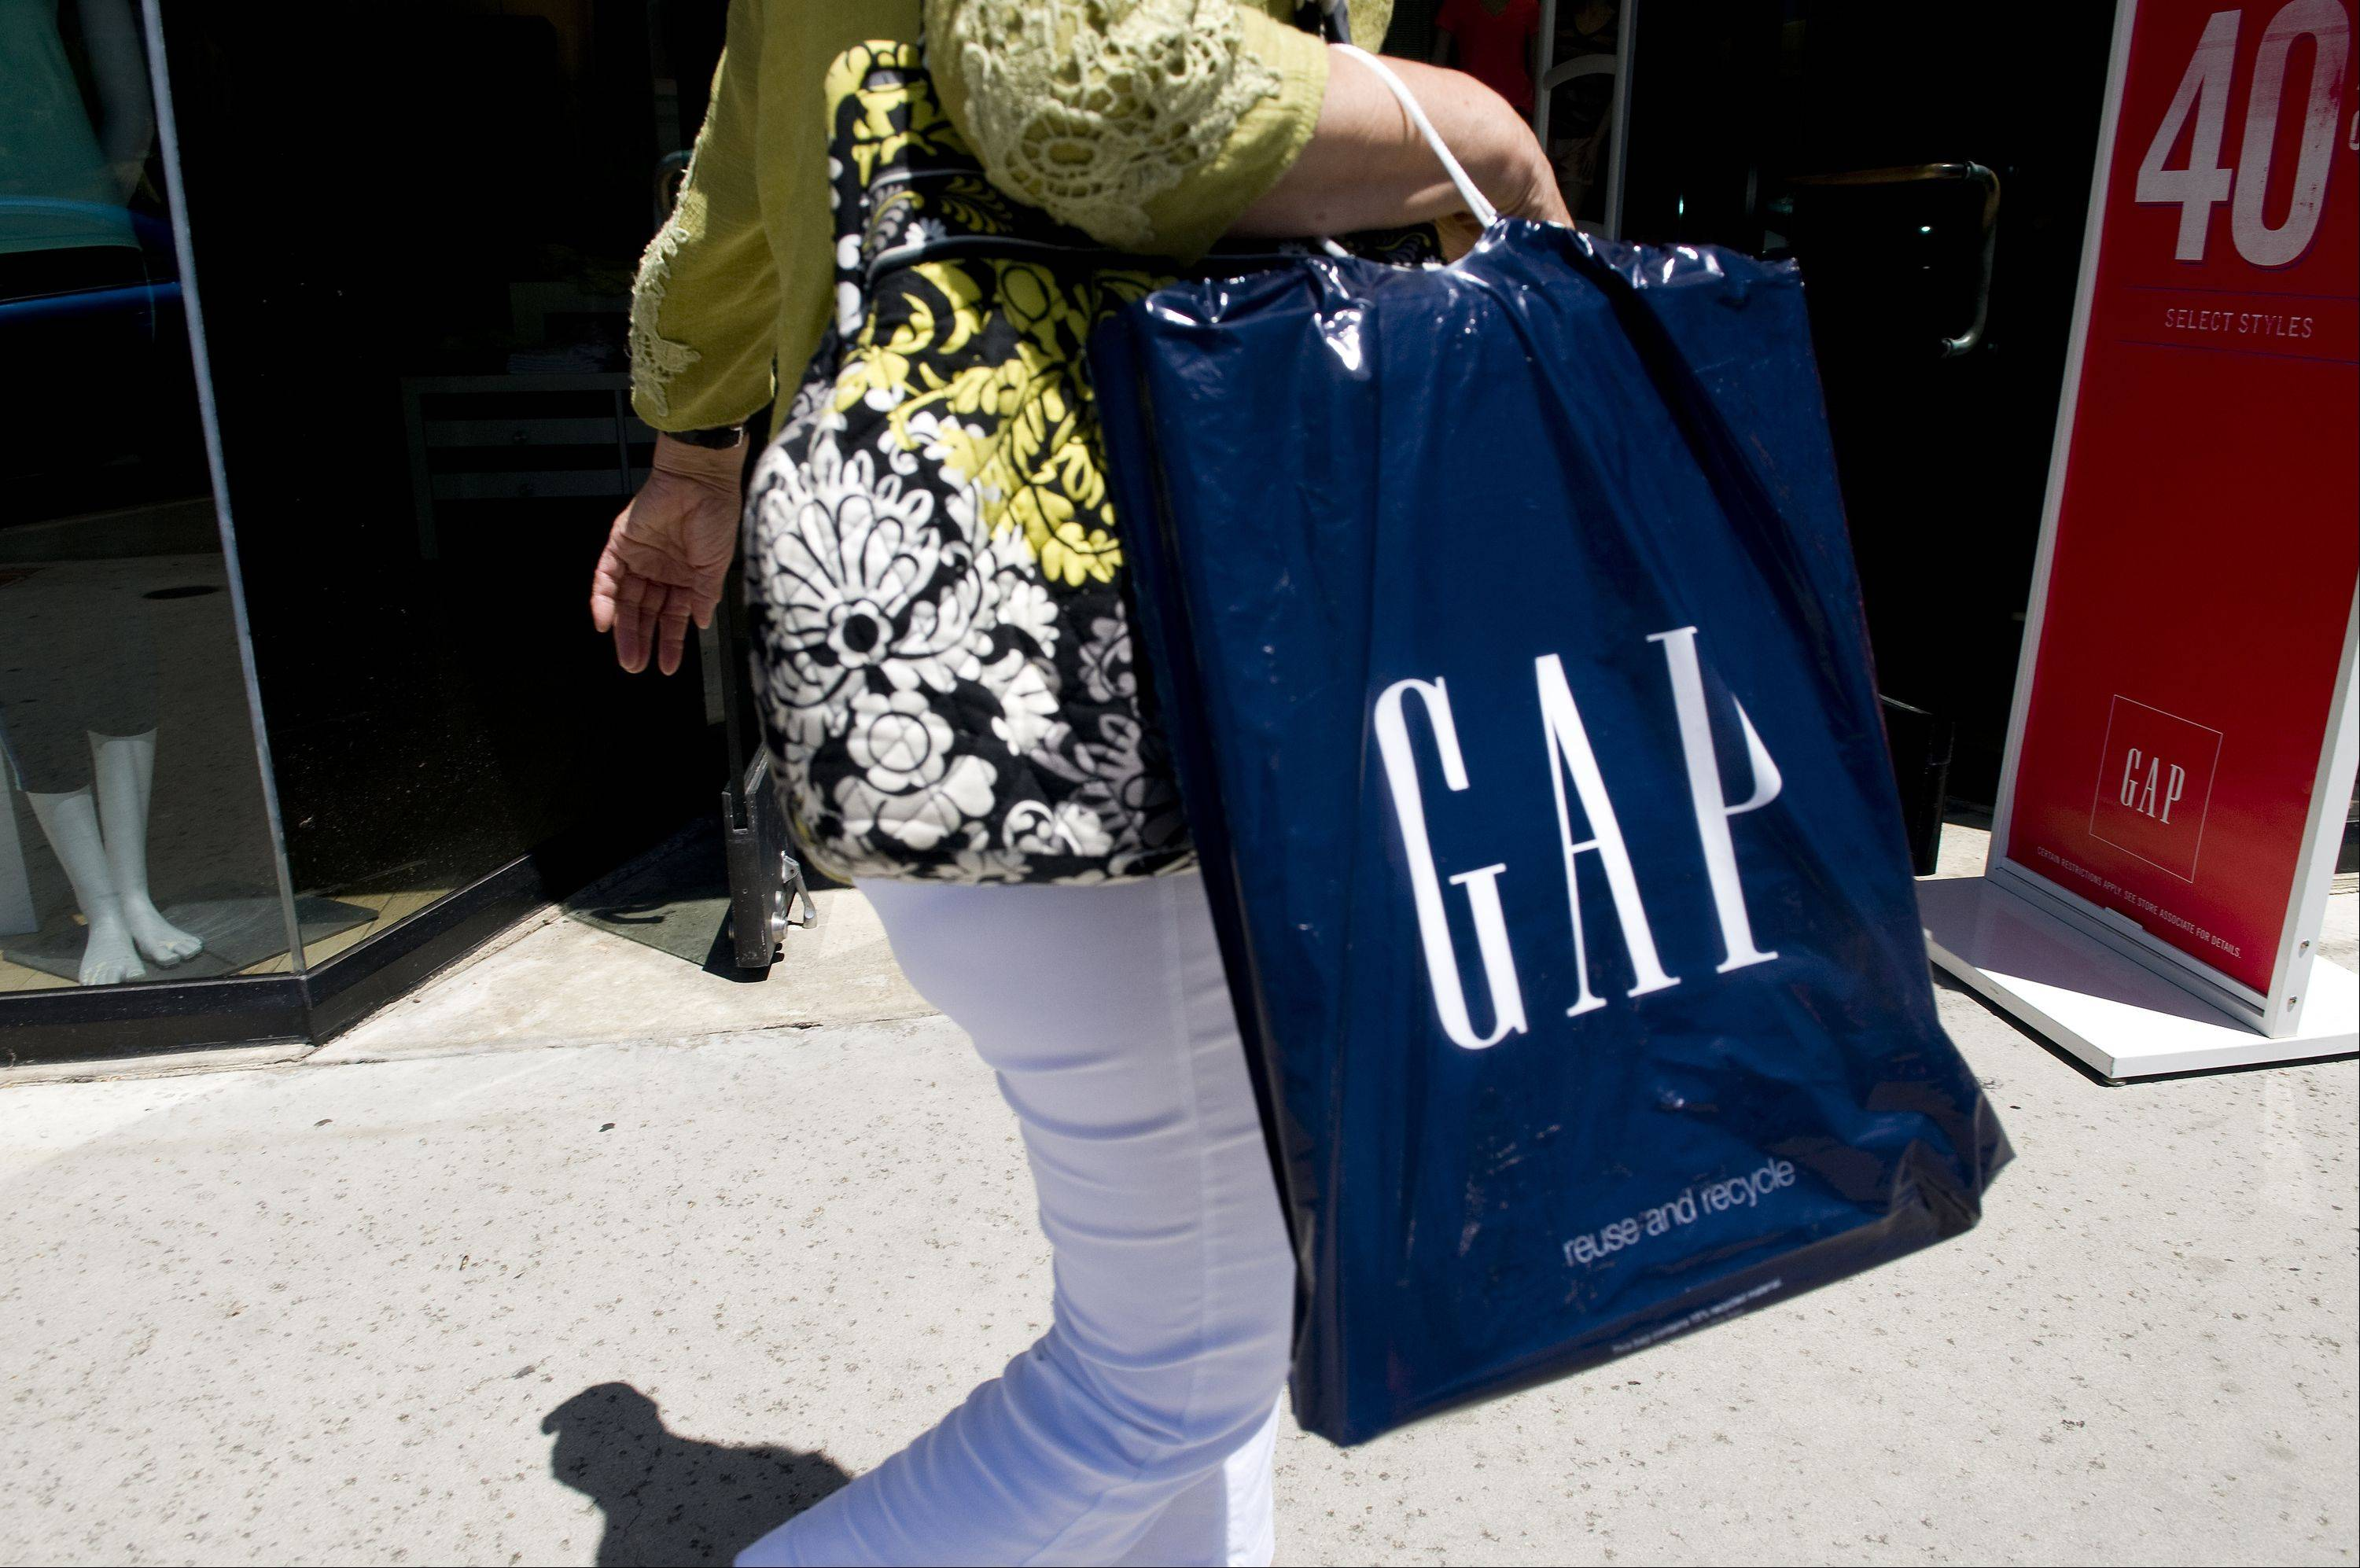 U.S. consumer confidence rose in July after four months of declines. A better outlook on short-term hiring and lower gas prices offset lingering worries about the economy and poor income growth.